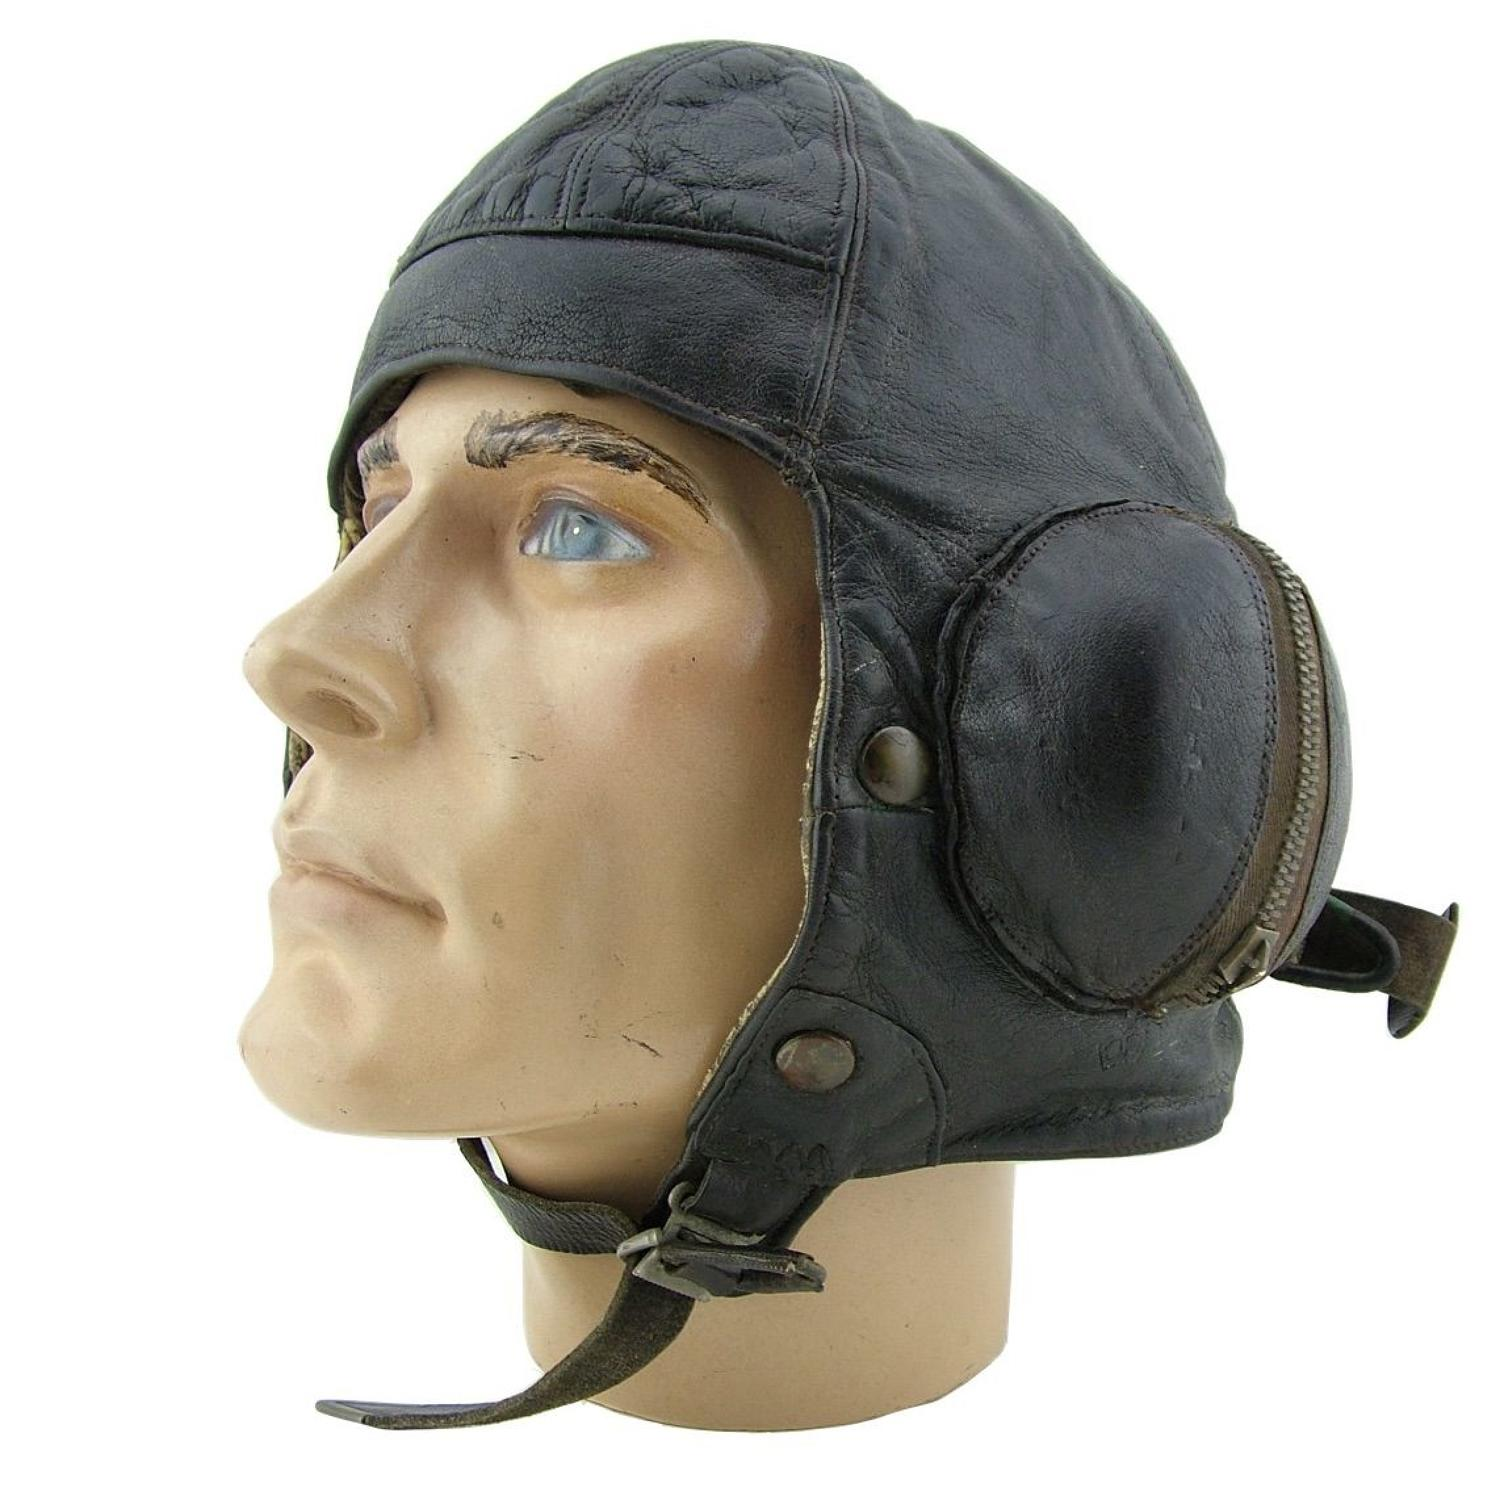 RAF B-type flying helmet